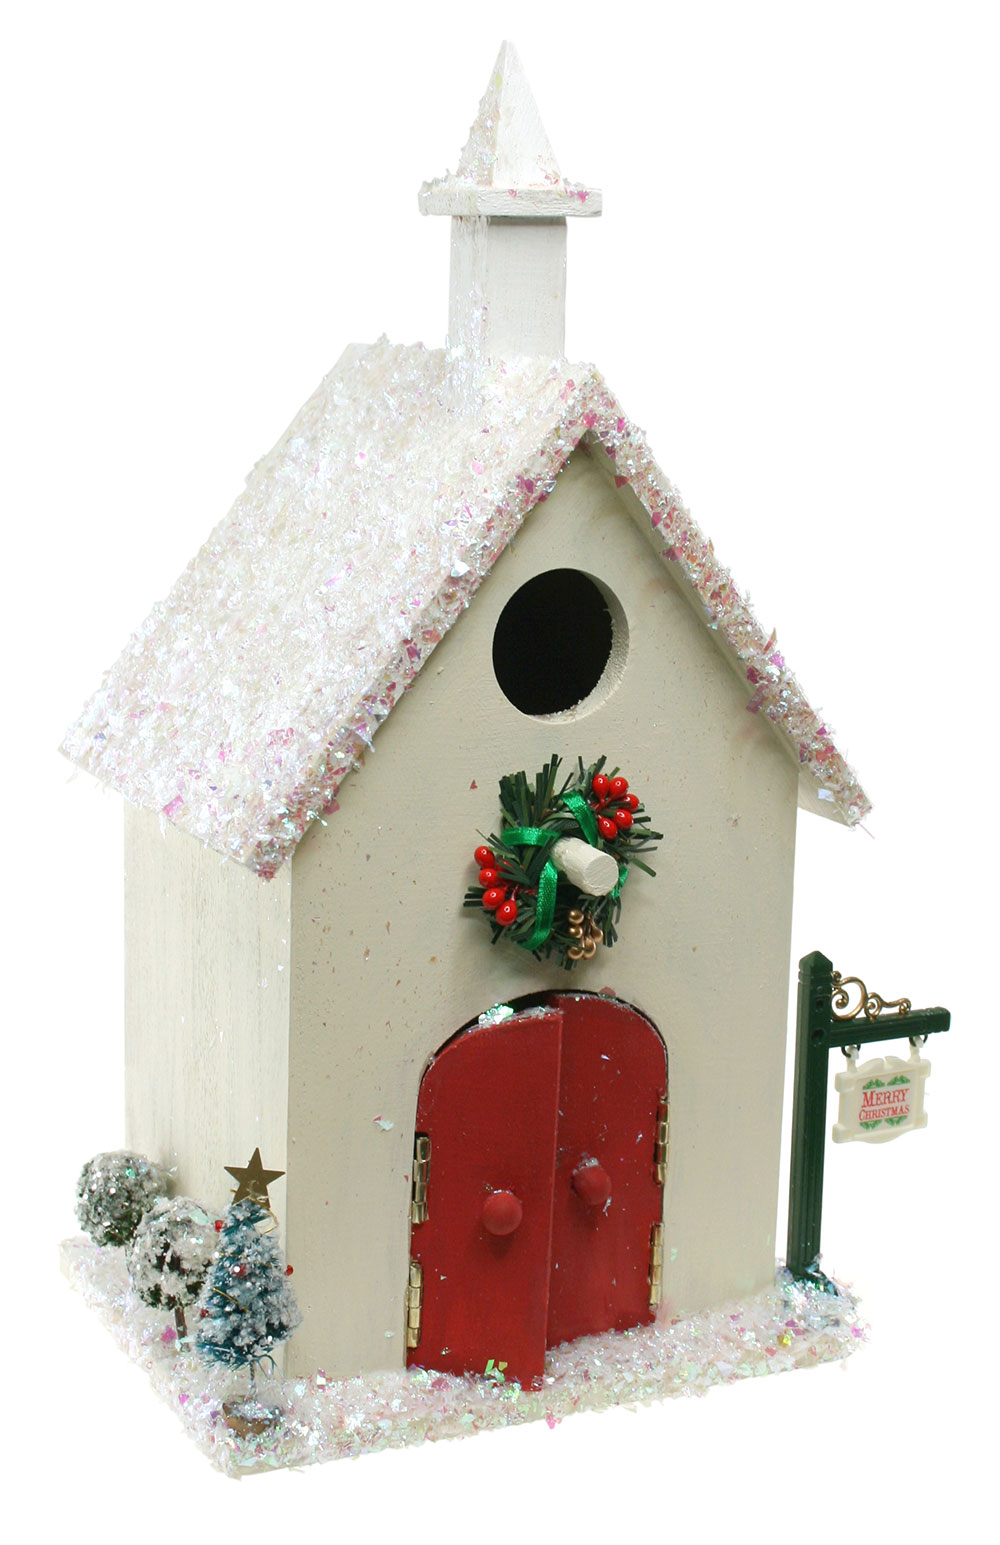 Matryx Pmj W Muzyq Winter 201302 Follow Me additionally Coloured Water Activity moreover Christmas Birdhouses additionally Online Furniture Consignment Store additionally 88 Enchanted Shabby Chic Living Room Decoration Ideas. on thrift shop ideas